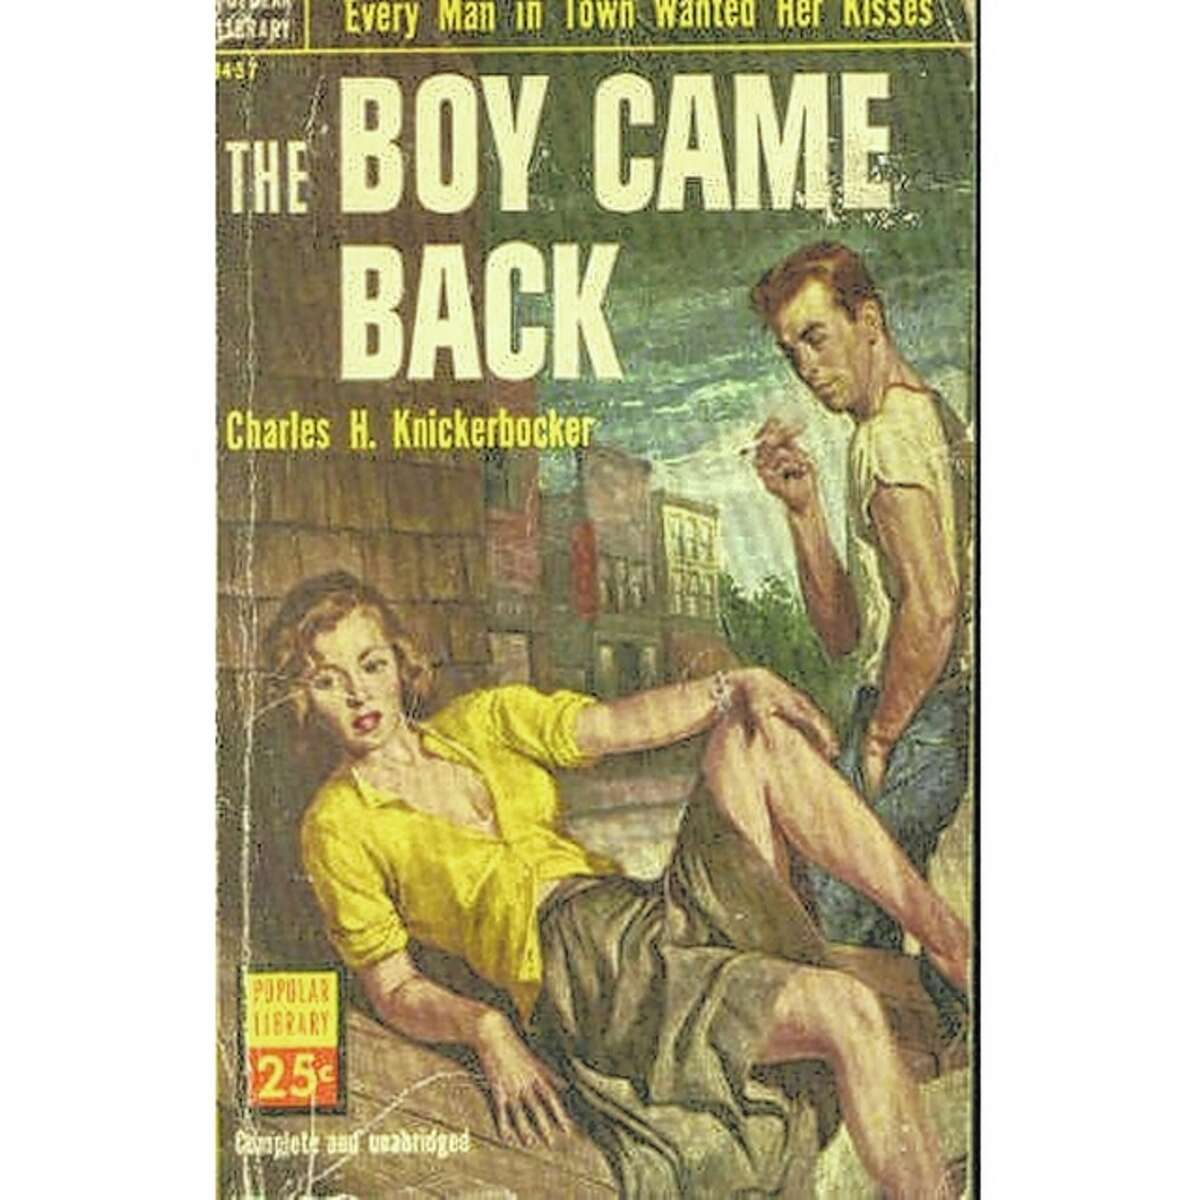 """Charles H. Knickerbocker's novel """"The Boy Came Back"""" ignited a furor in the mid-1950s when a teenager borrowed a copy of it provided by the Illinois State Library."""